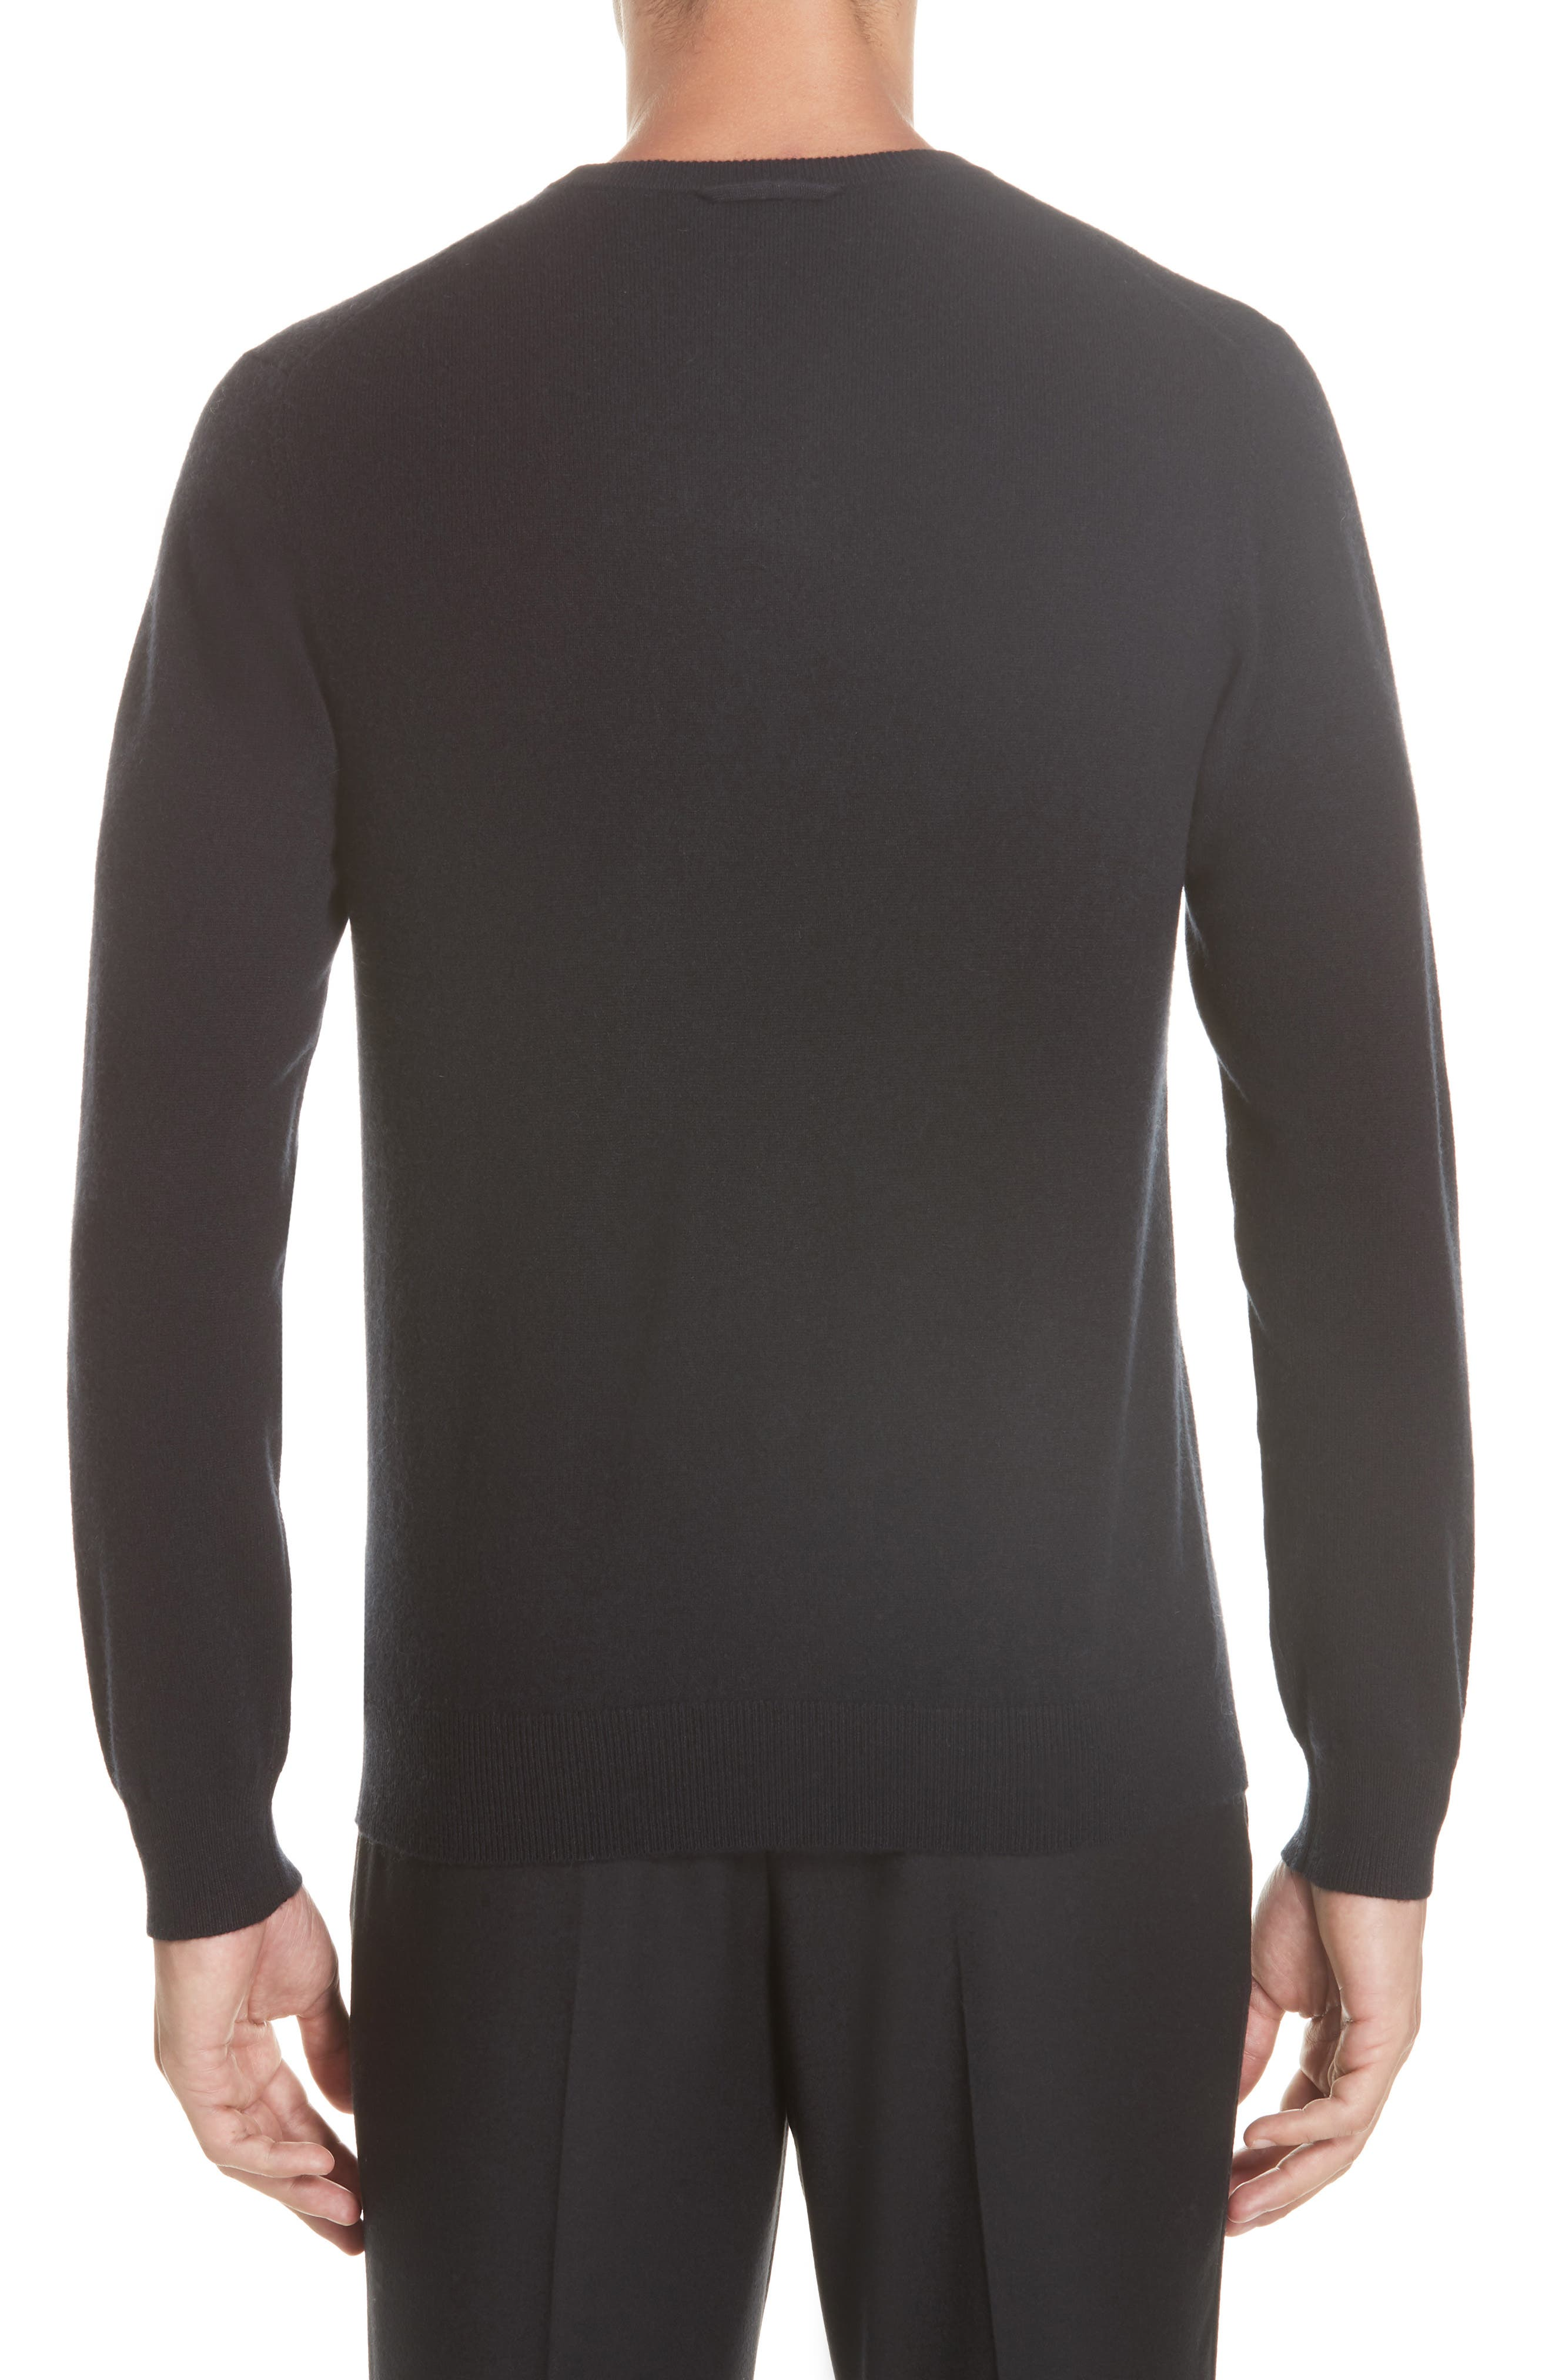 Cashmere Blend Crewneck Sweater,                             Alternate thumbnail 2, color,                             BLACK